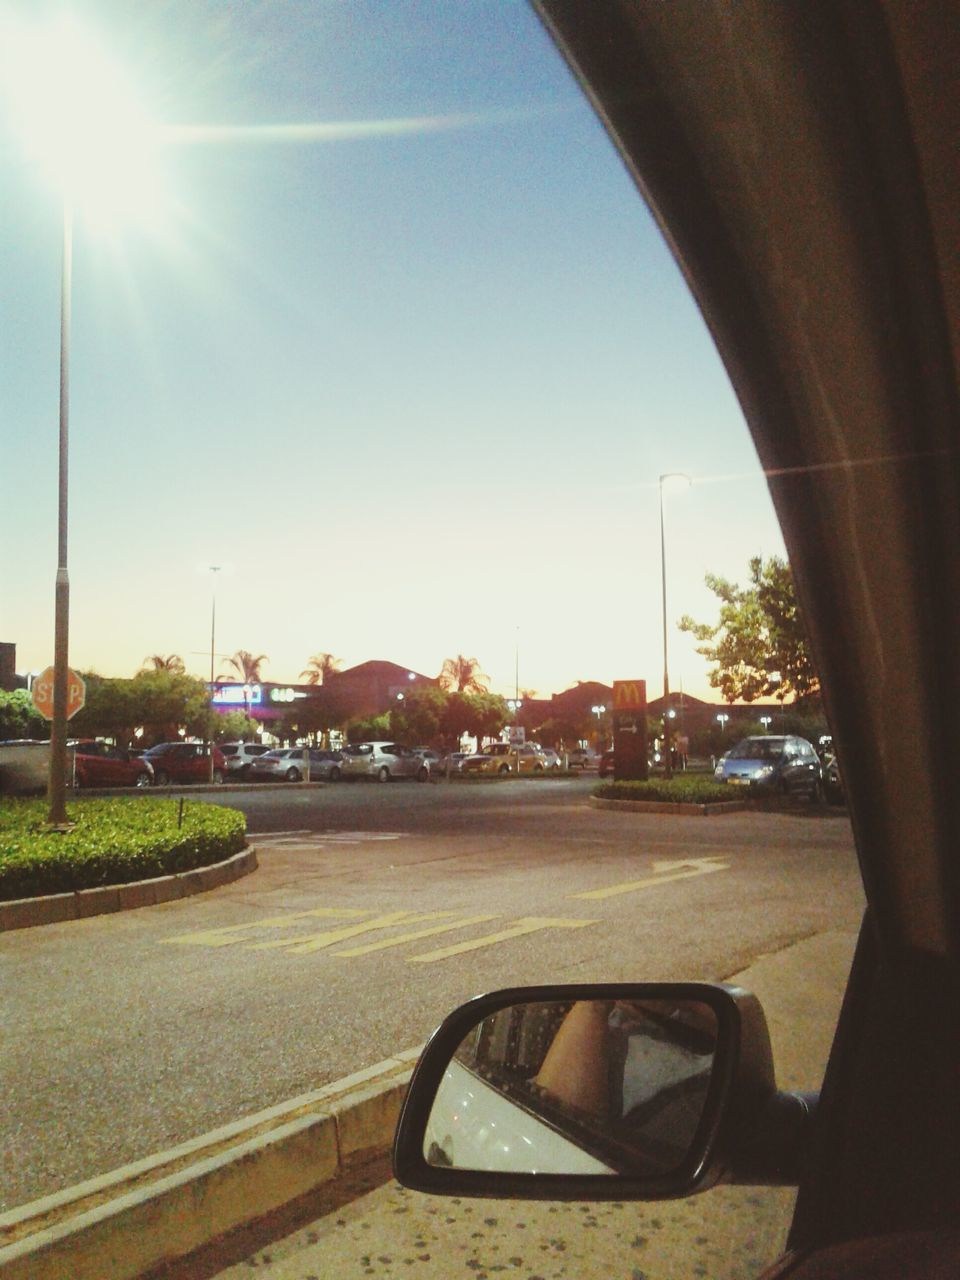 transportation, car, road, sky, land vehicle, sun, sunlight, side-view mirror, mode of transport, car interior, tree, clear sky, sunset, no people, day, outdoors, nature, city, close-up